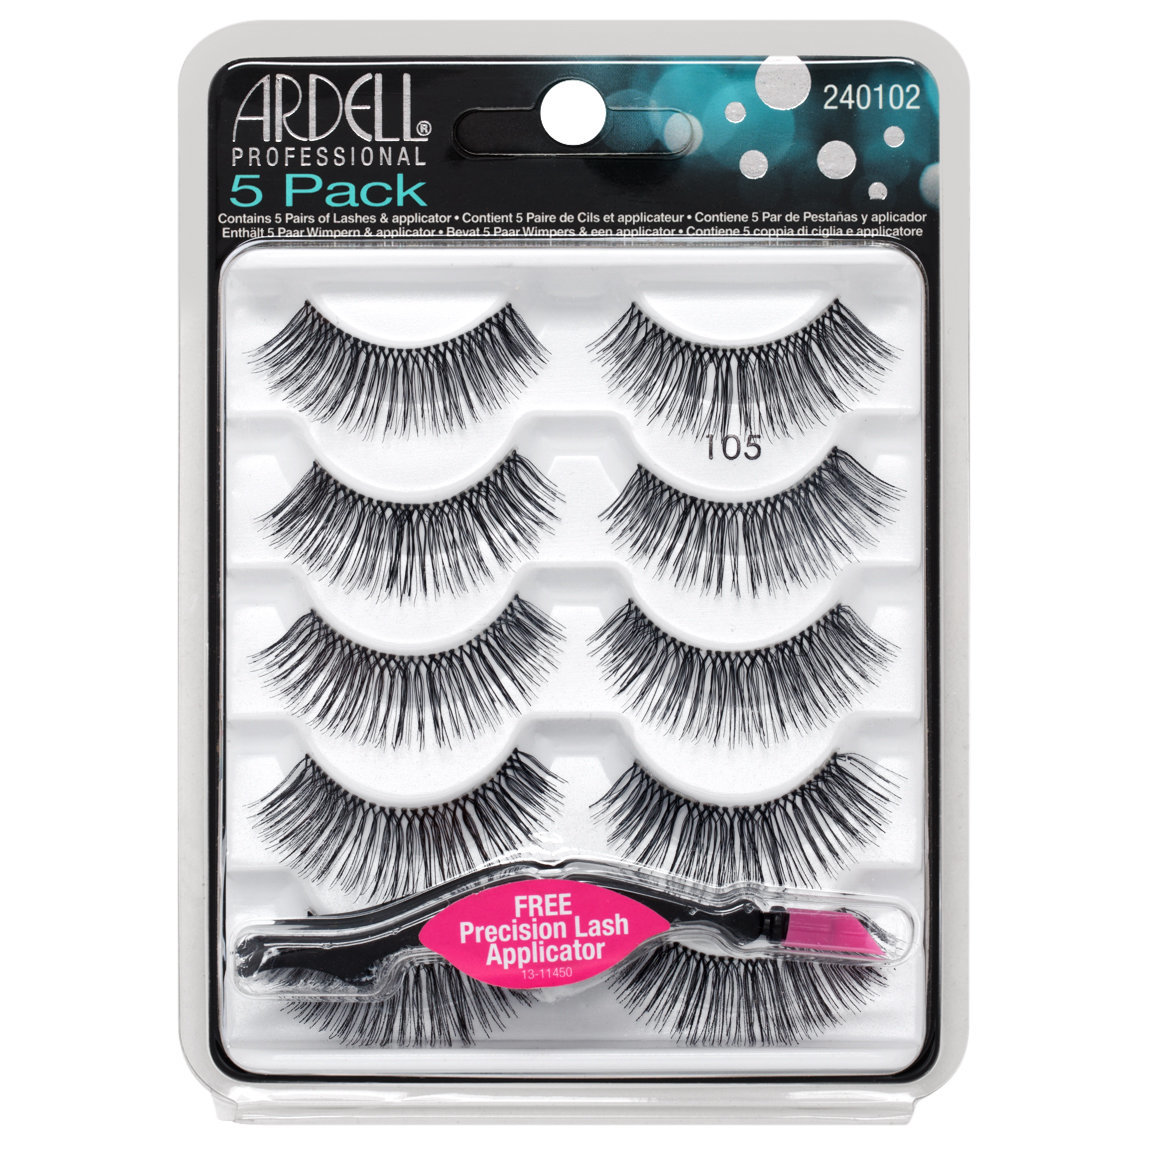 Ardell 5 Pack Natural 105 Black